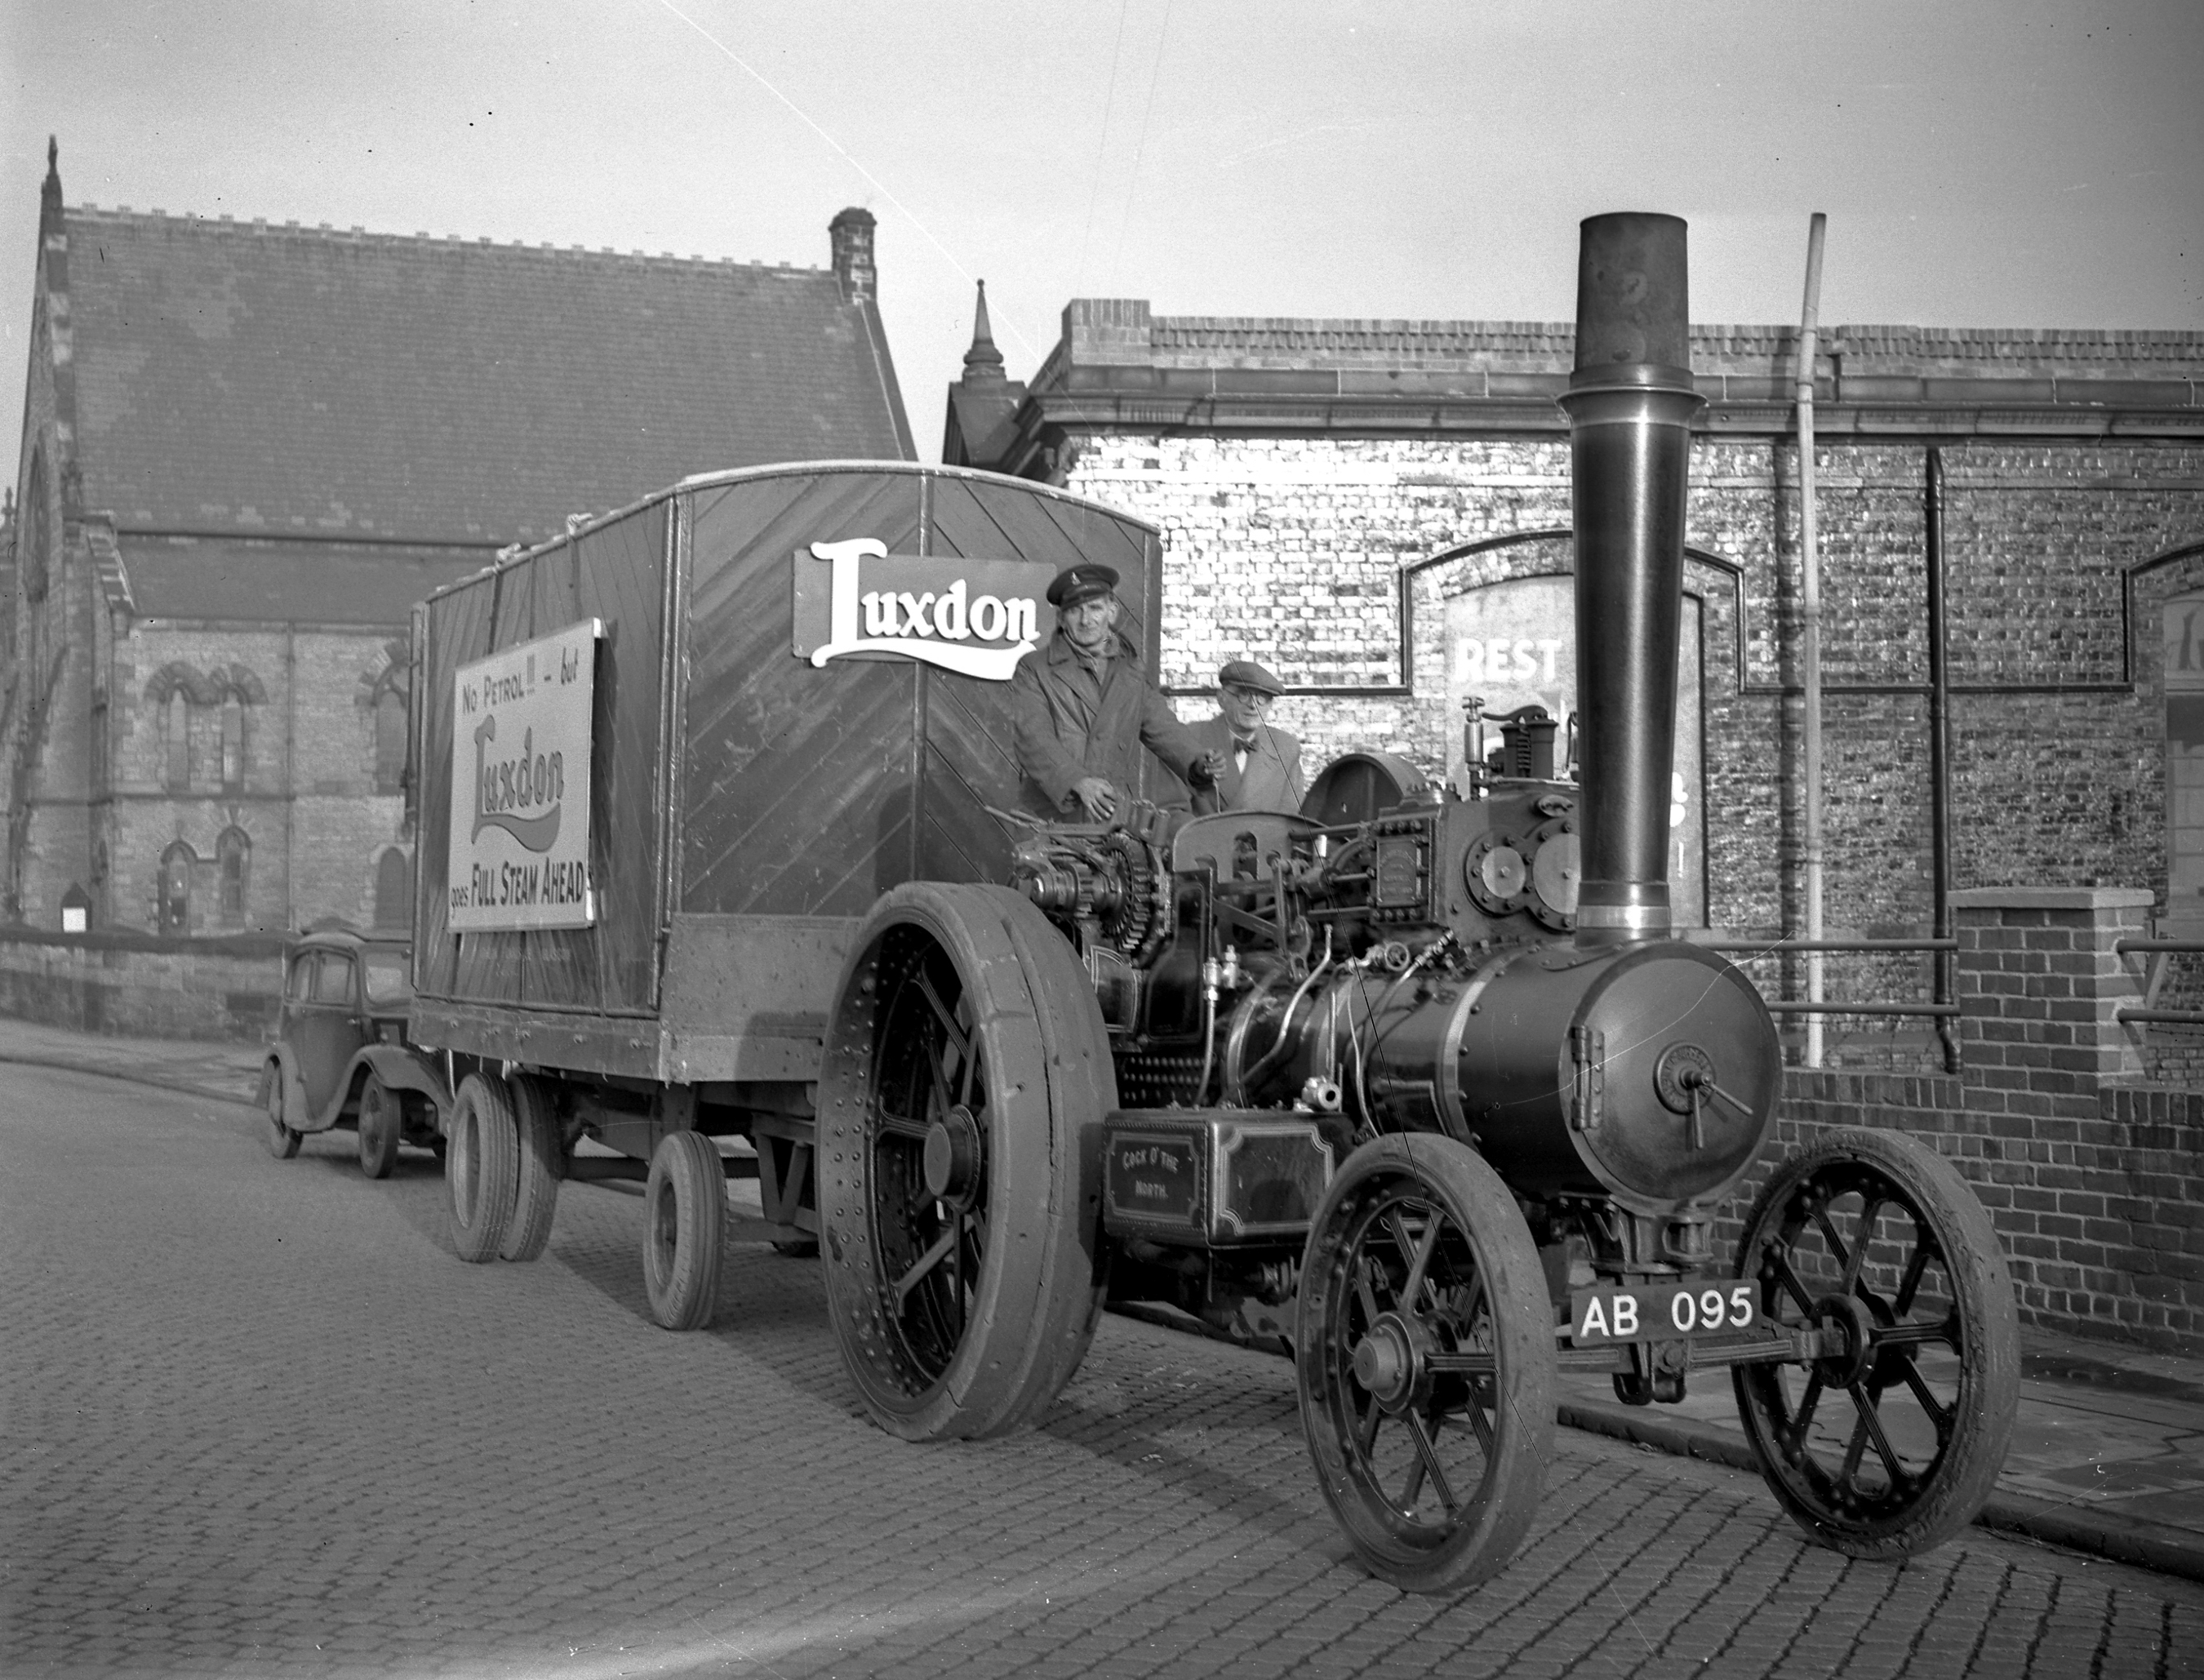 Luxdon Steam Engine  December 1956  old ref  number 25-2820